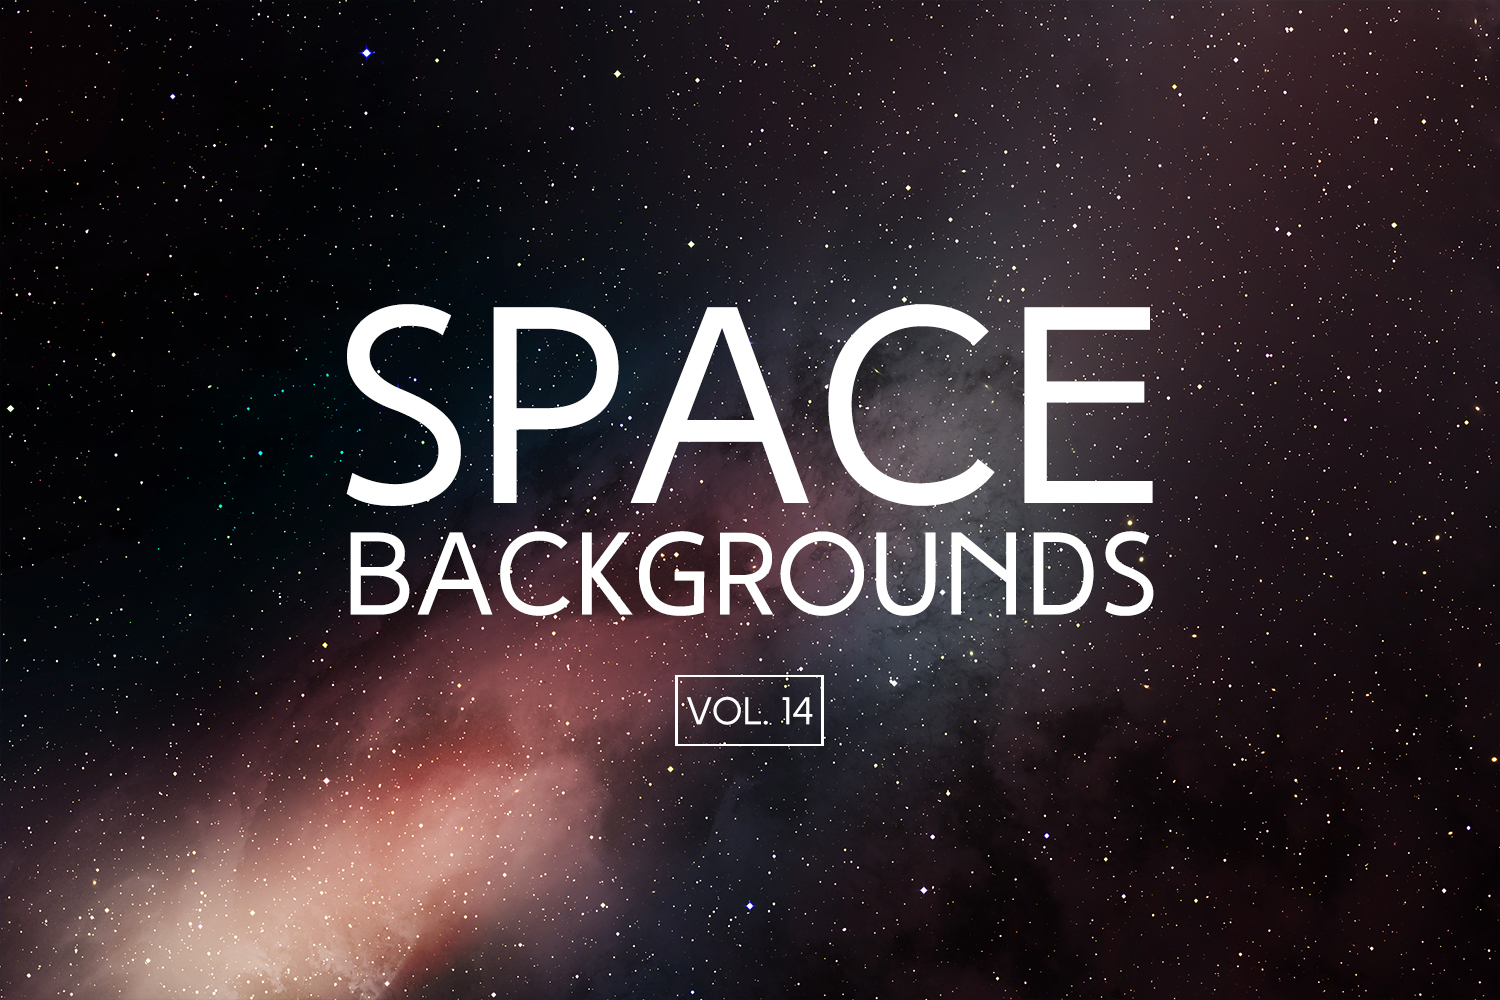 Download Free Space Backgrounds Vol 14 Graphic By Freezerondigital Creative for Cricut Explore, Silhouette and other cutting machines.